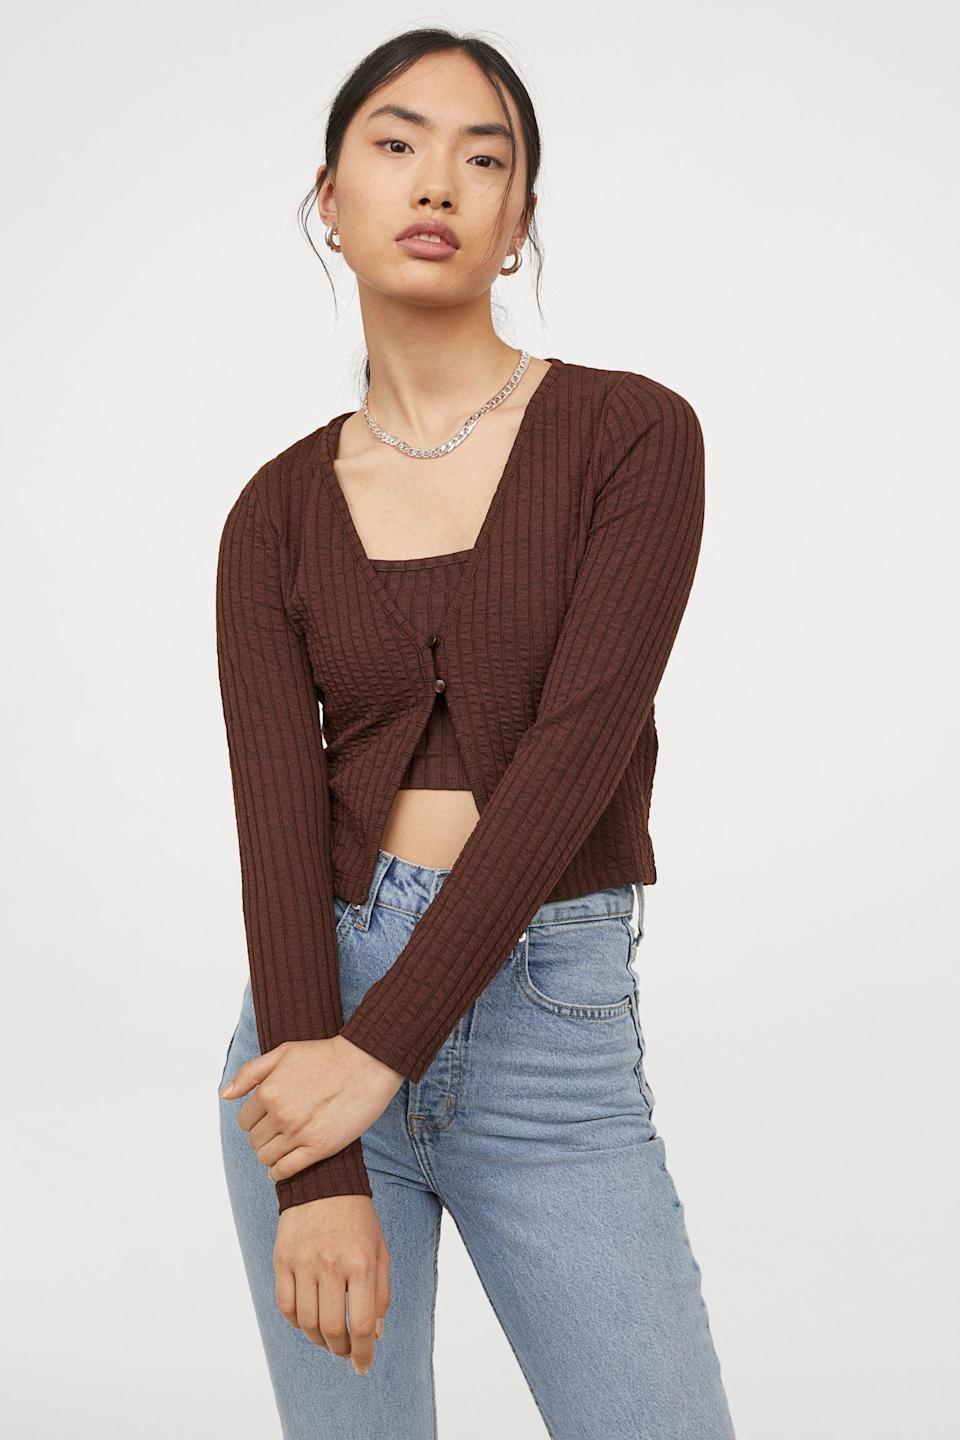 <p>There's something so simple yet elevated about this <span>Fine-Knit Cardigan</span> ($10, oriignally $13) - pair it with black leather pants. Complete your look with a trench coat and some heeled boots.</p>